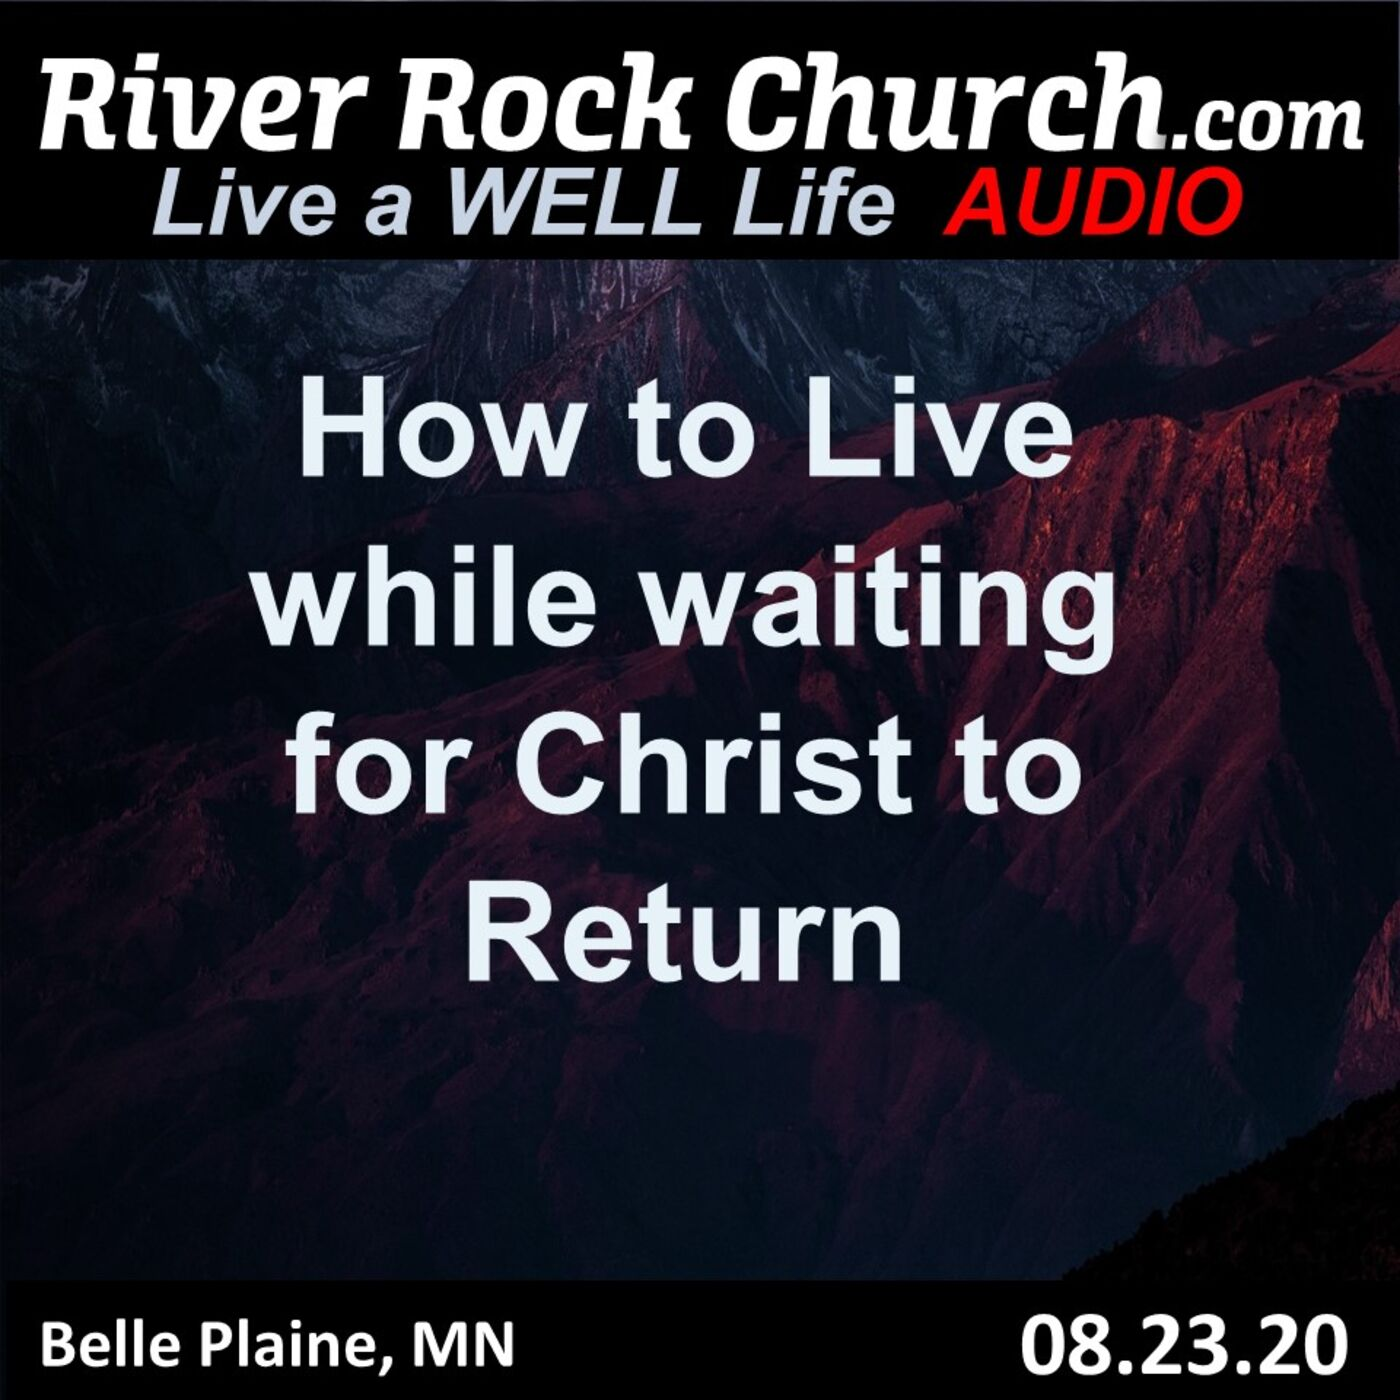 How to Live while Waiting for Christ to Return